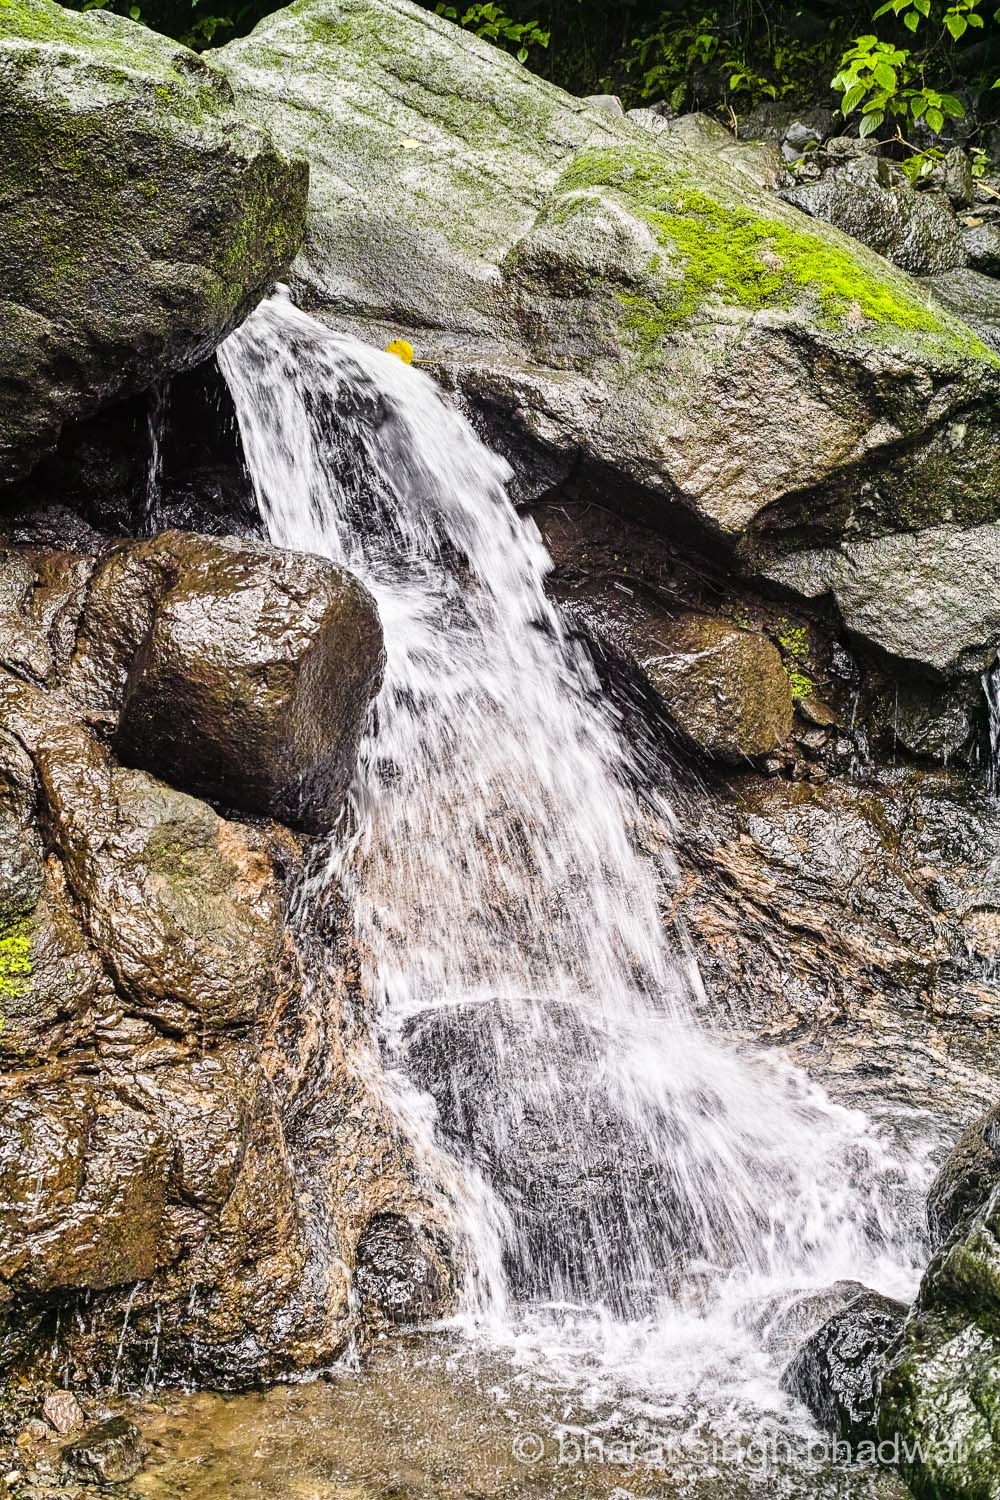 A small waterfall next to the shack